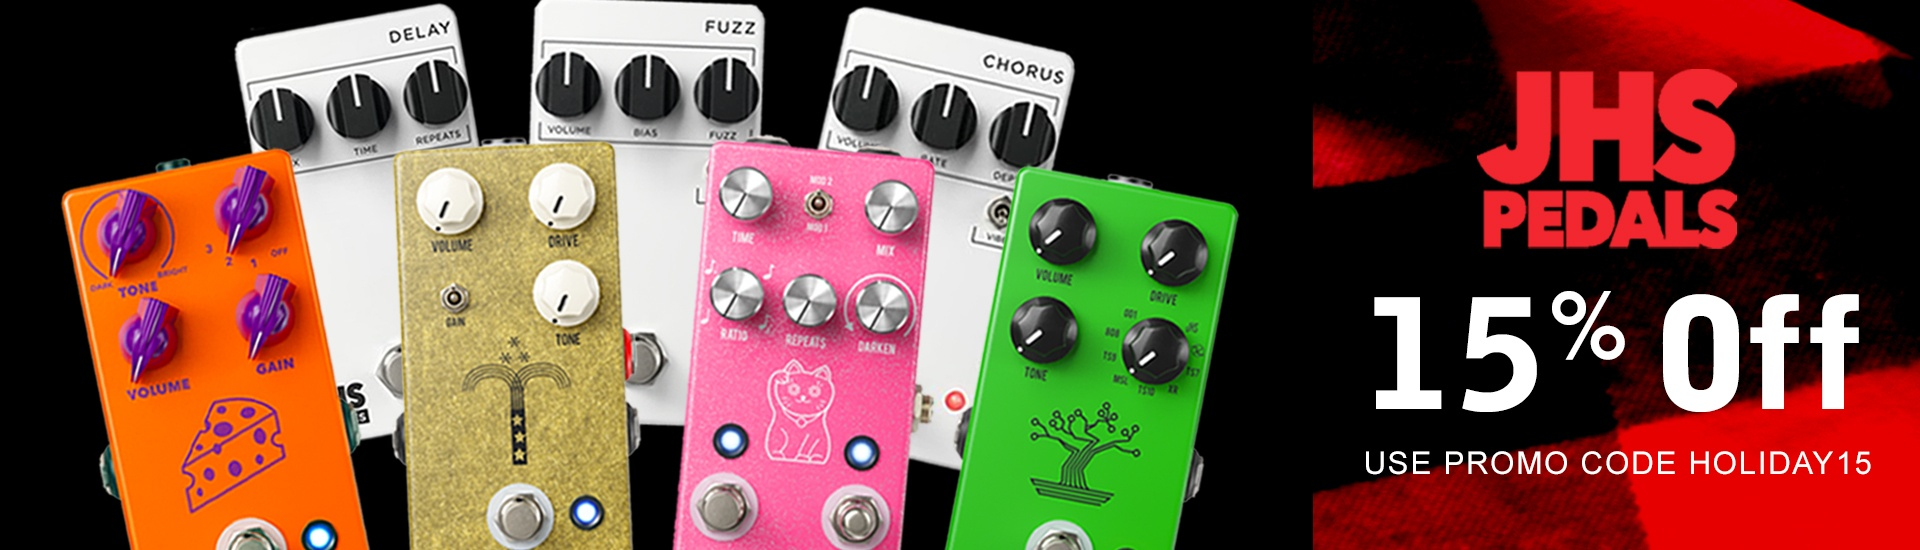 JHS pedals on sale